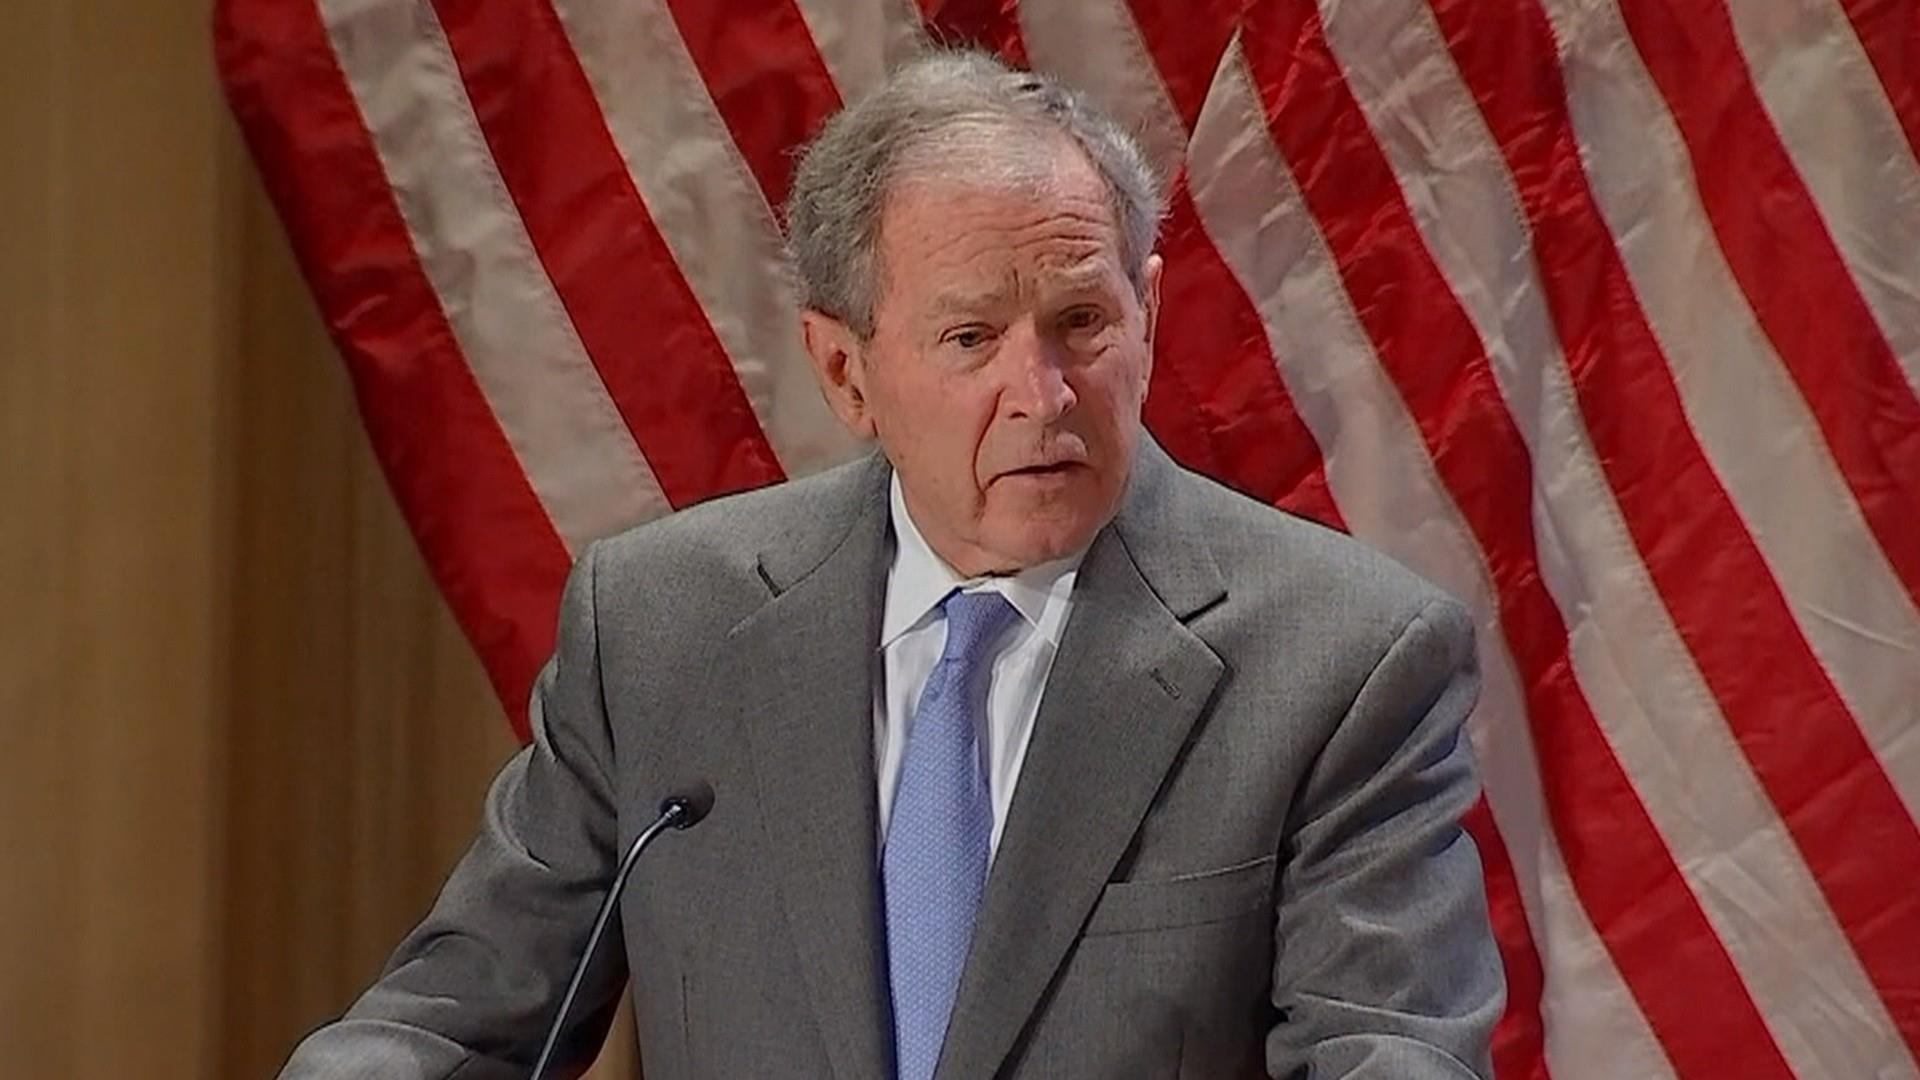 George W. Bush says 'immigration is a blessing' at naturalization ceremony